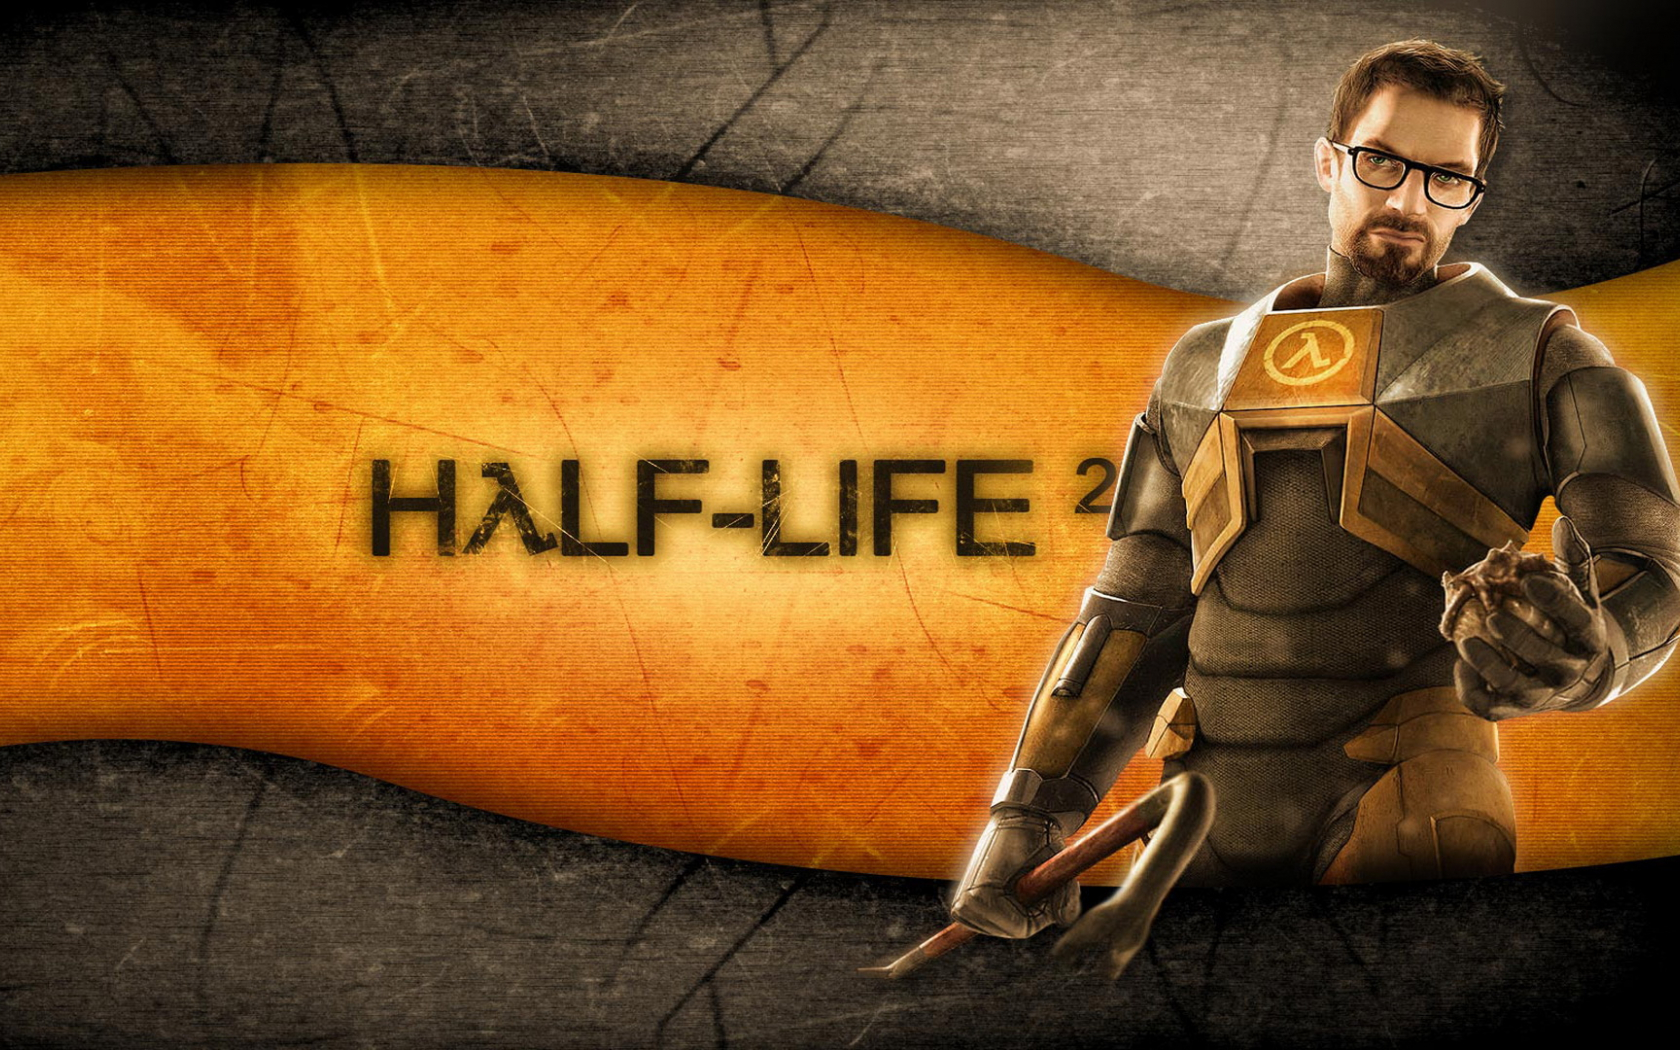 Free Download Game Hd Wallpapers Video Games Hd 1080p Wallpaper